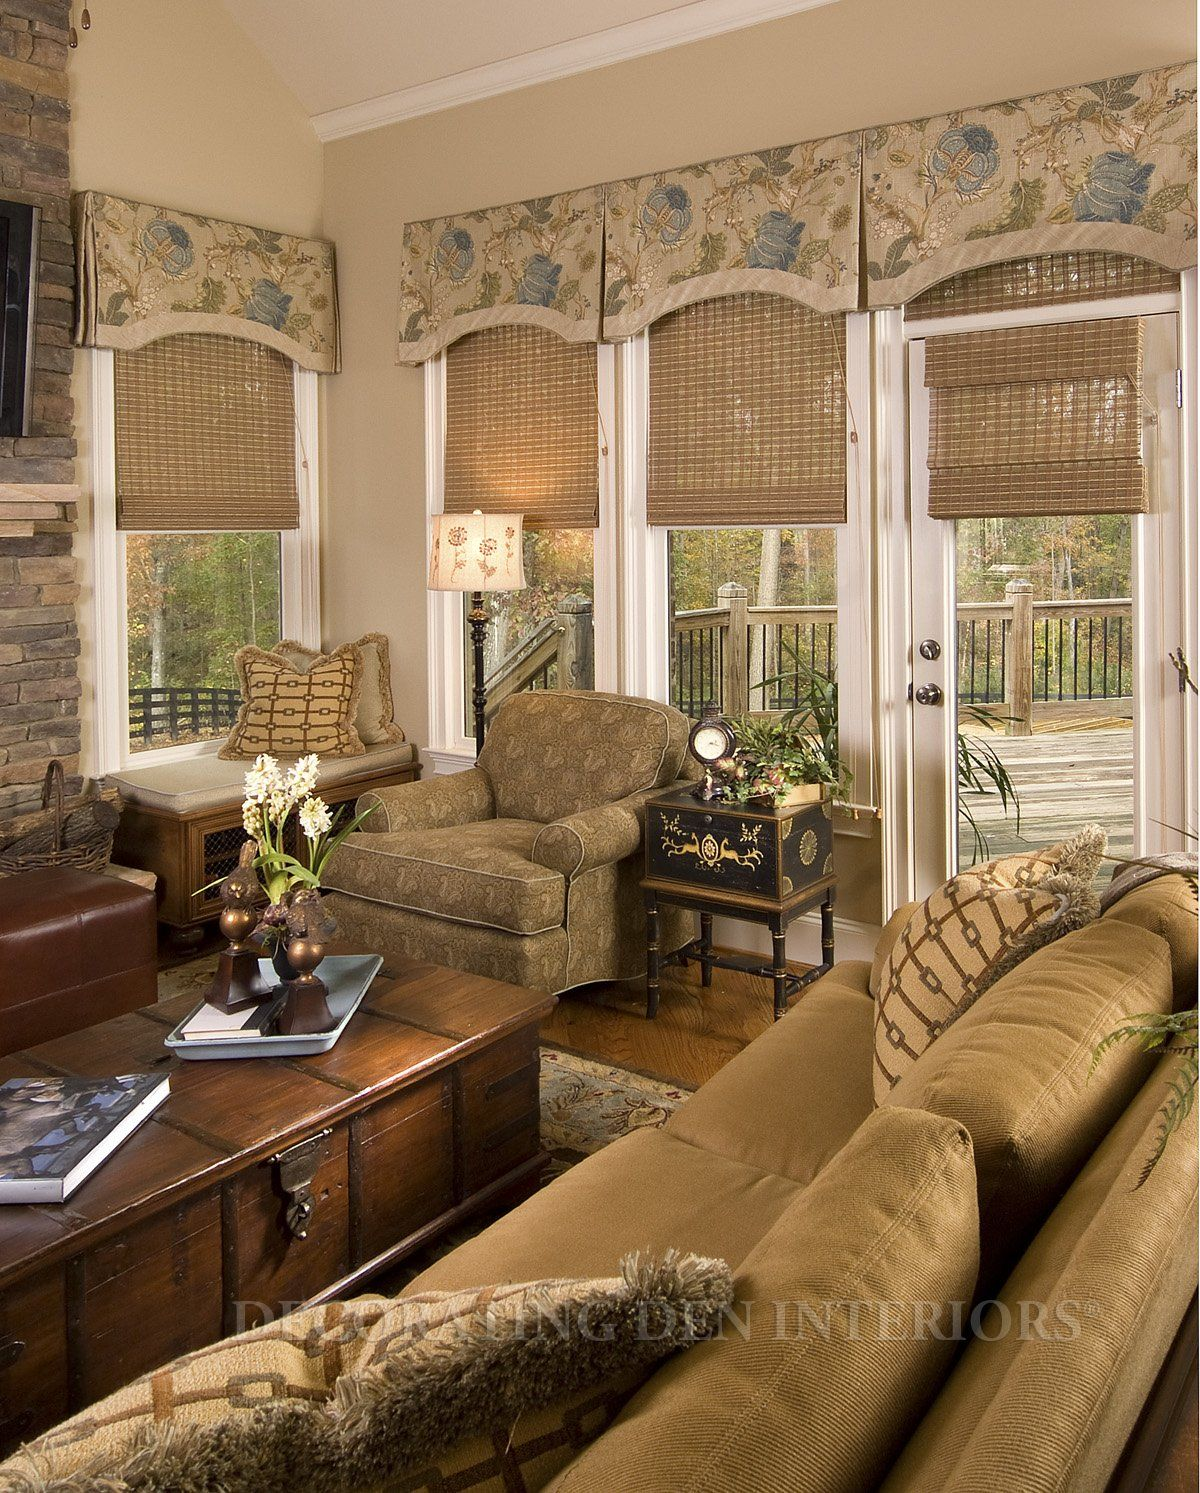 Valances Over Woven Shades Room Designed By Tracy